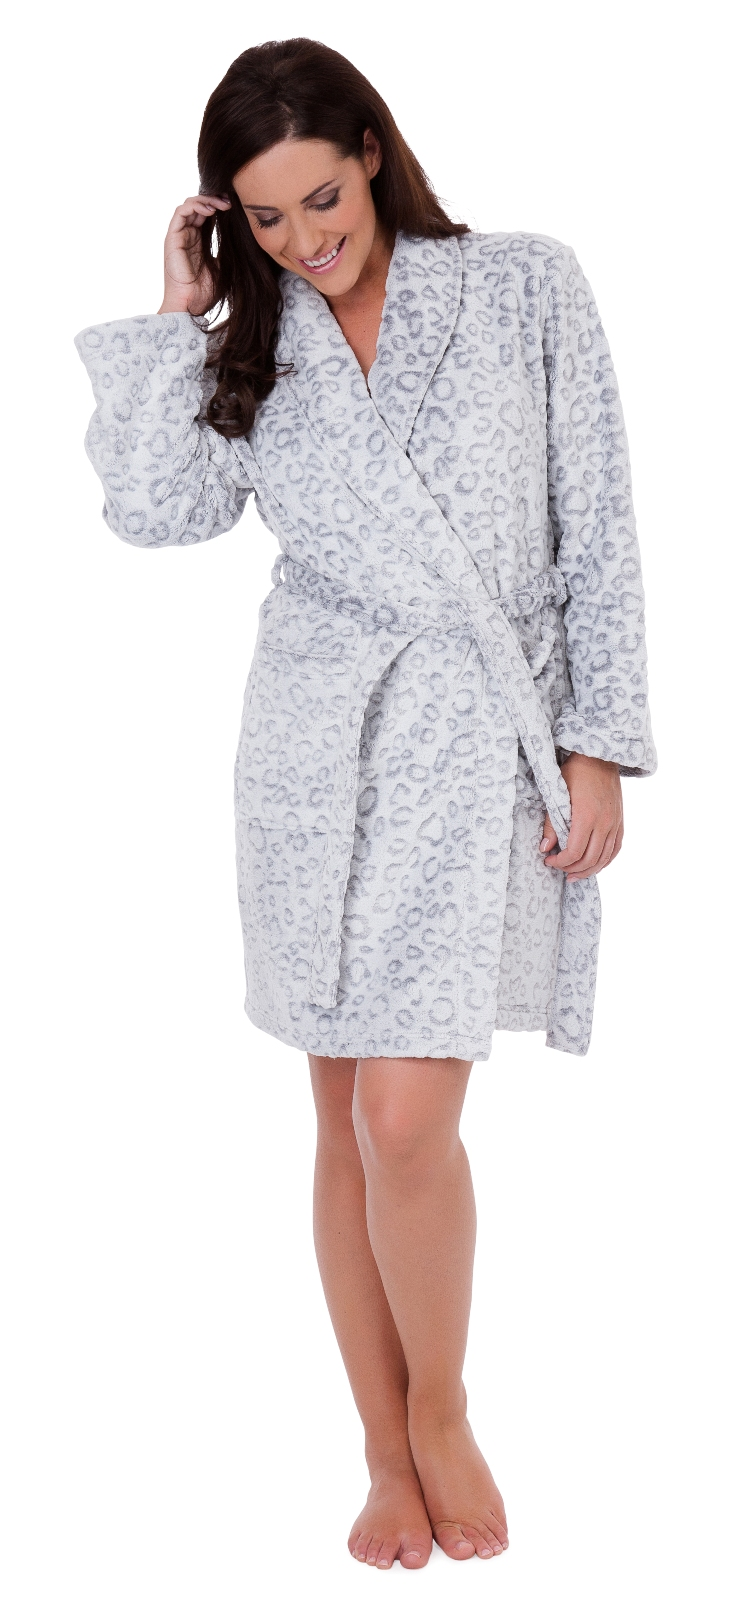 Womens Luxury Leopard Nightwear Range Robe Dressing Gown Pyjamas Pjs